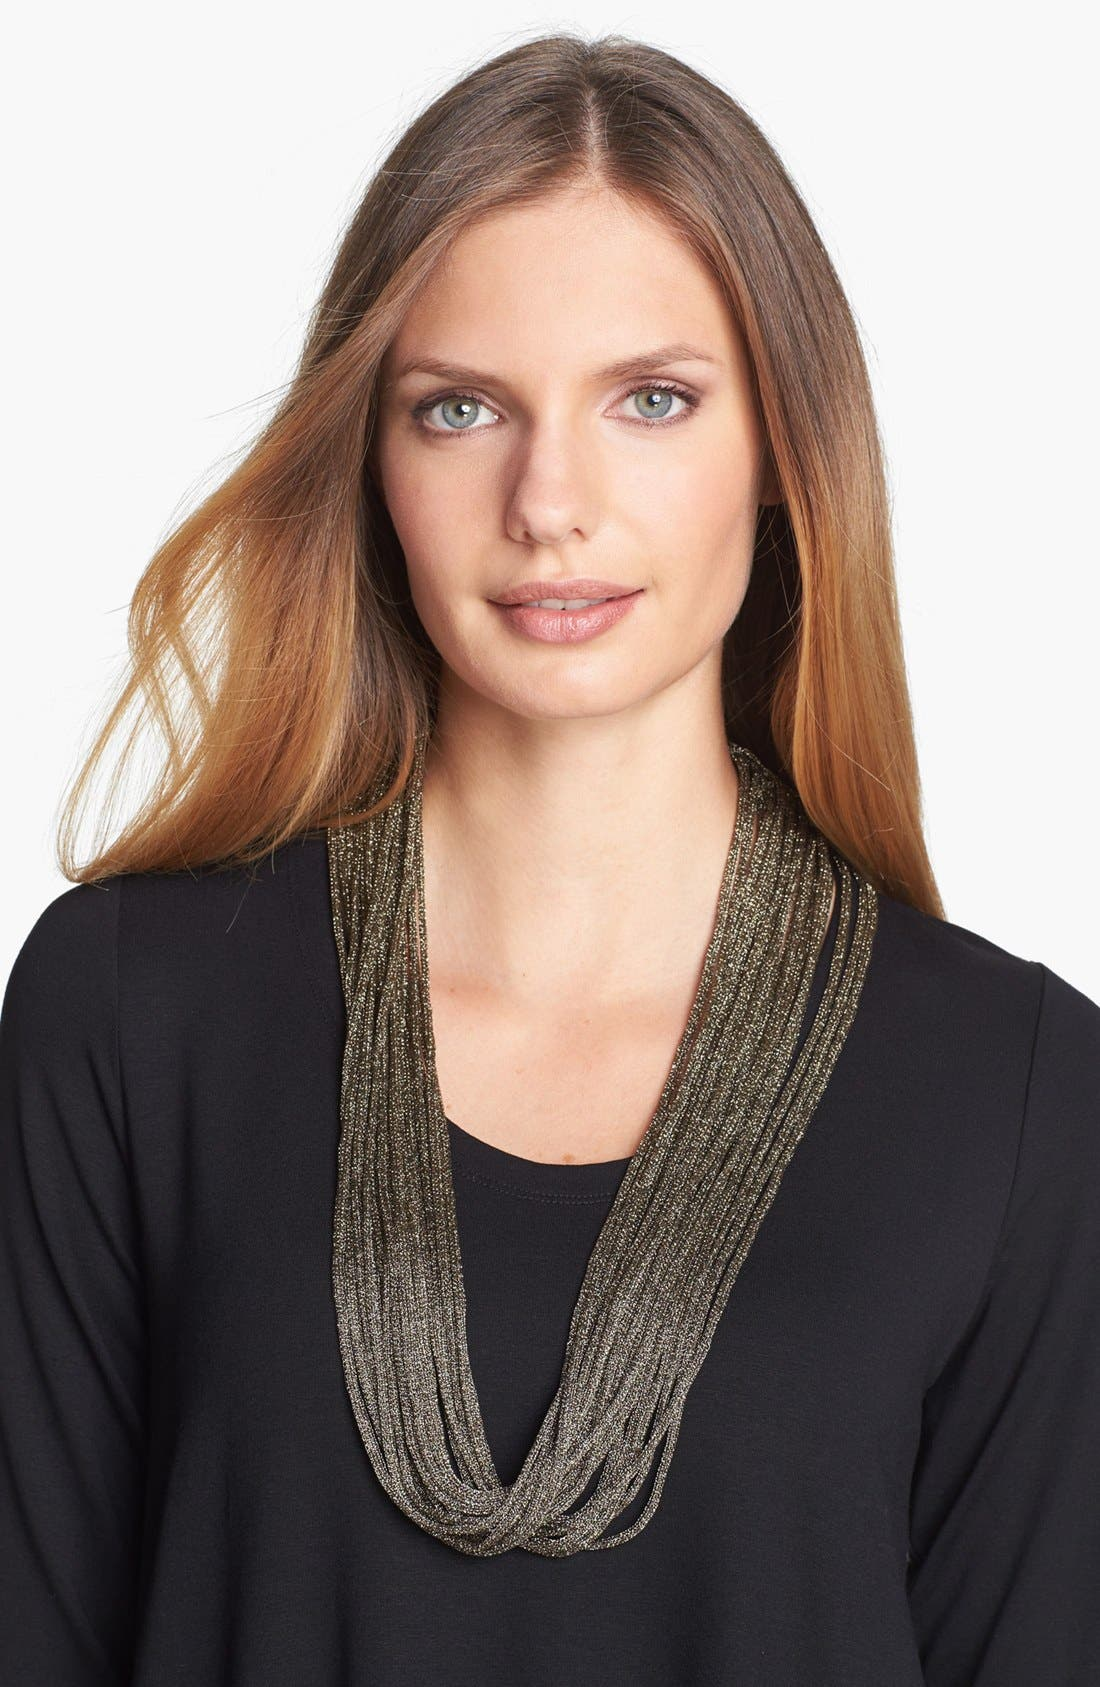 Alternate Image 1 Selected - Eileen Fisher Metallic Necklace Scarf